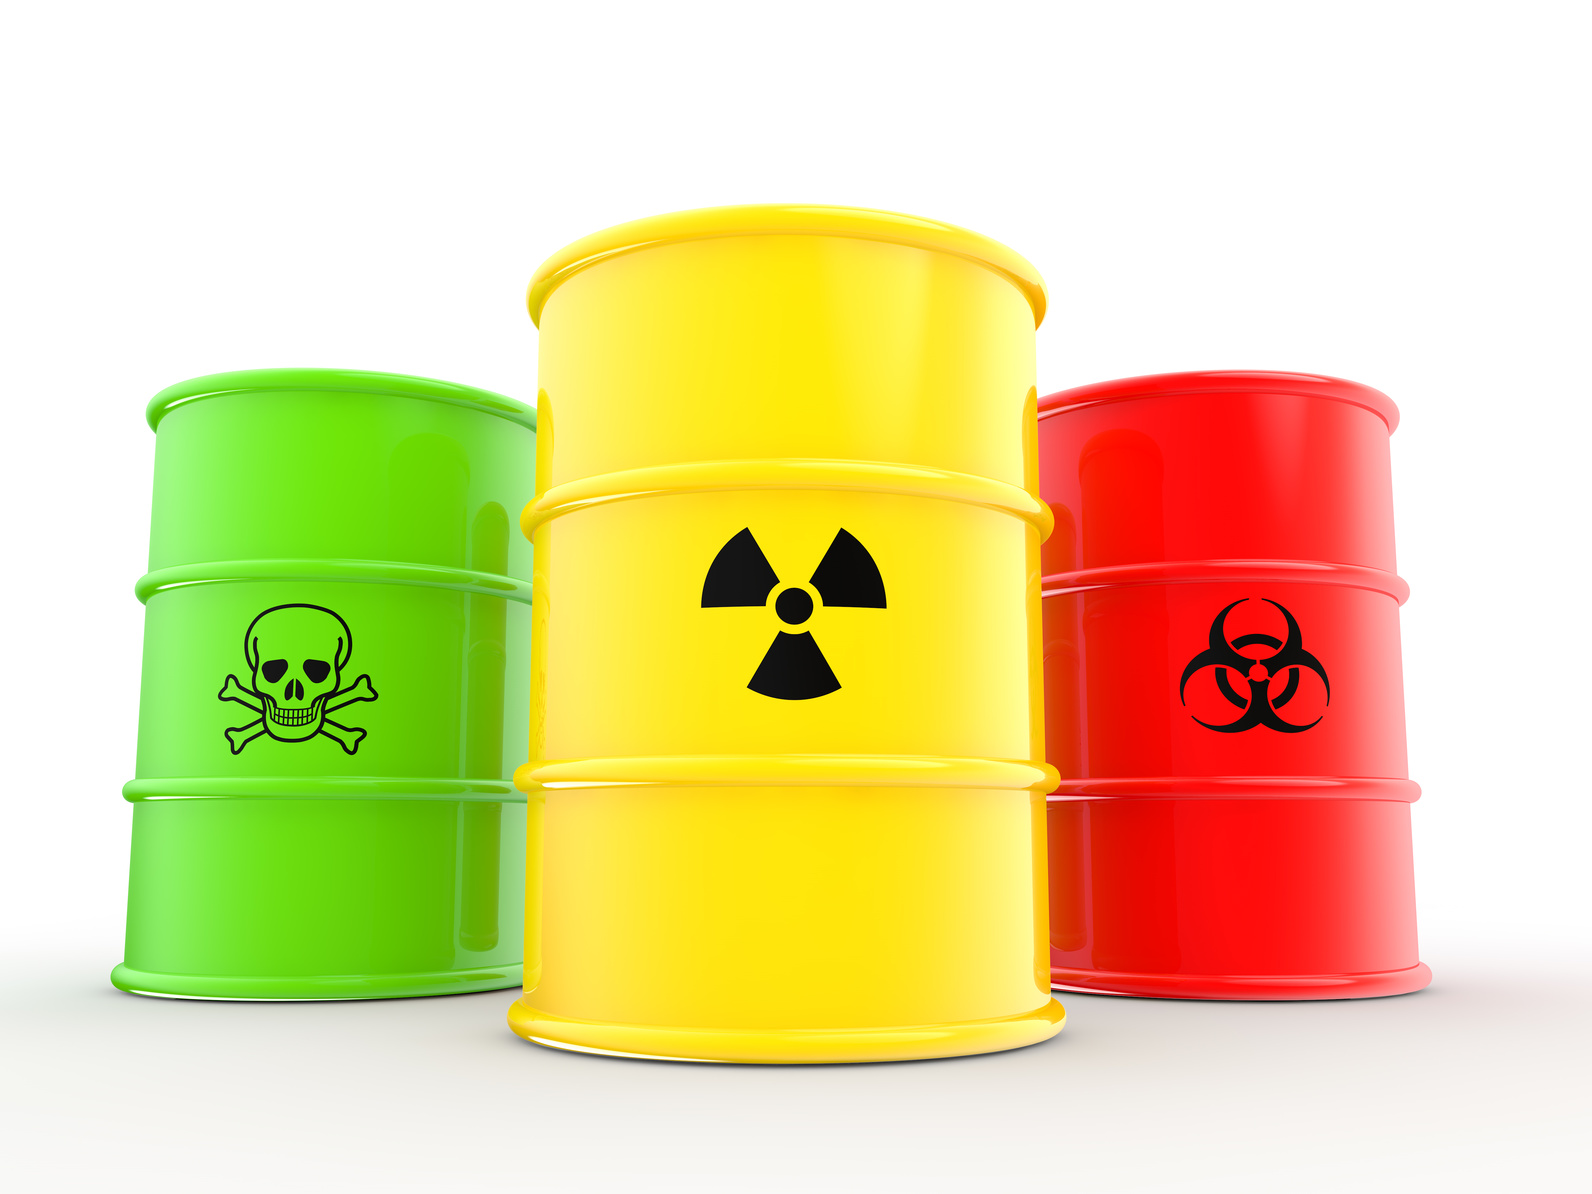 3d barrels with radiations bio hazard and toxic material symbols